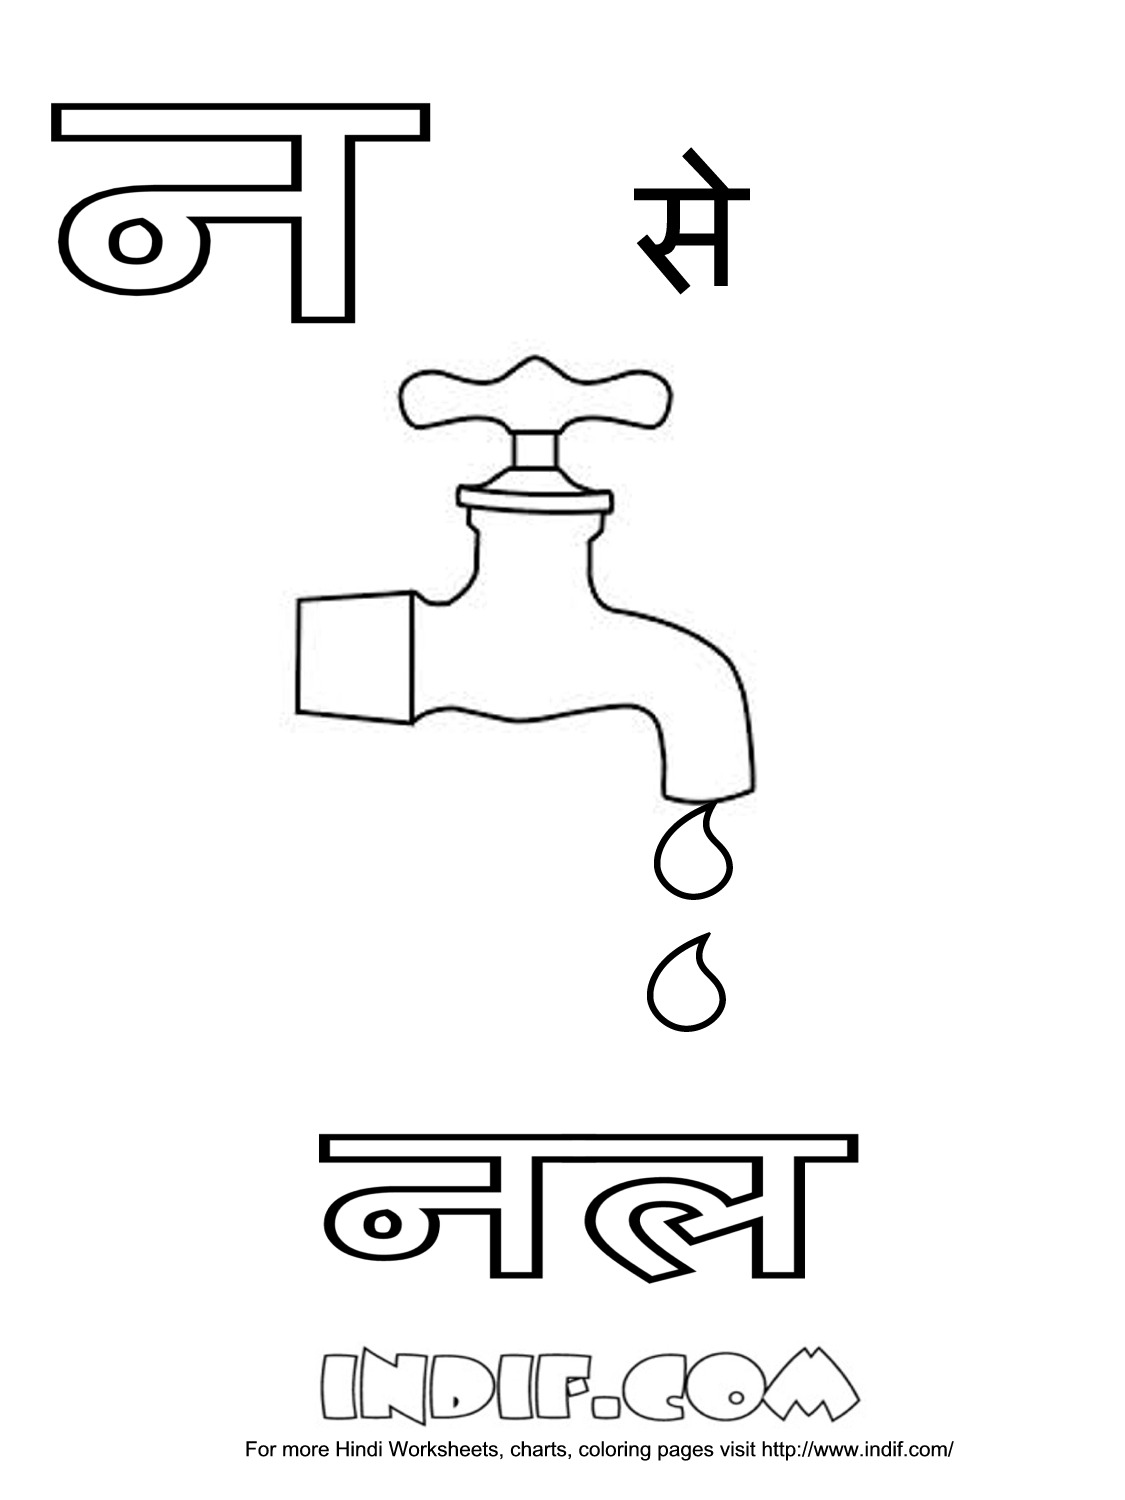 Dotted Hindi Alphabets For Practice